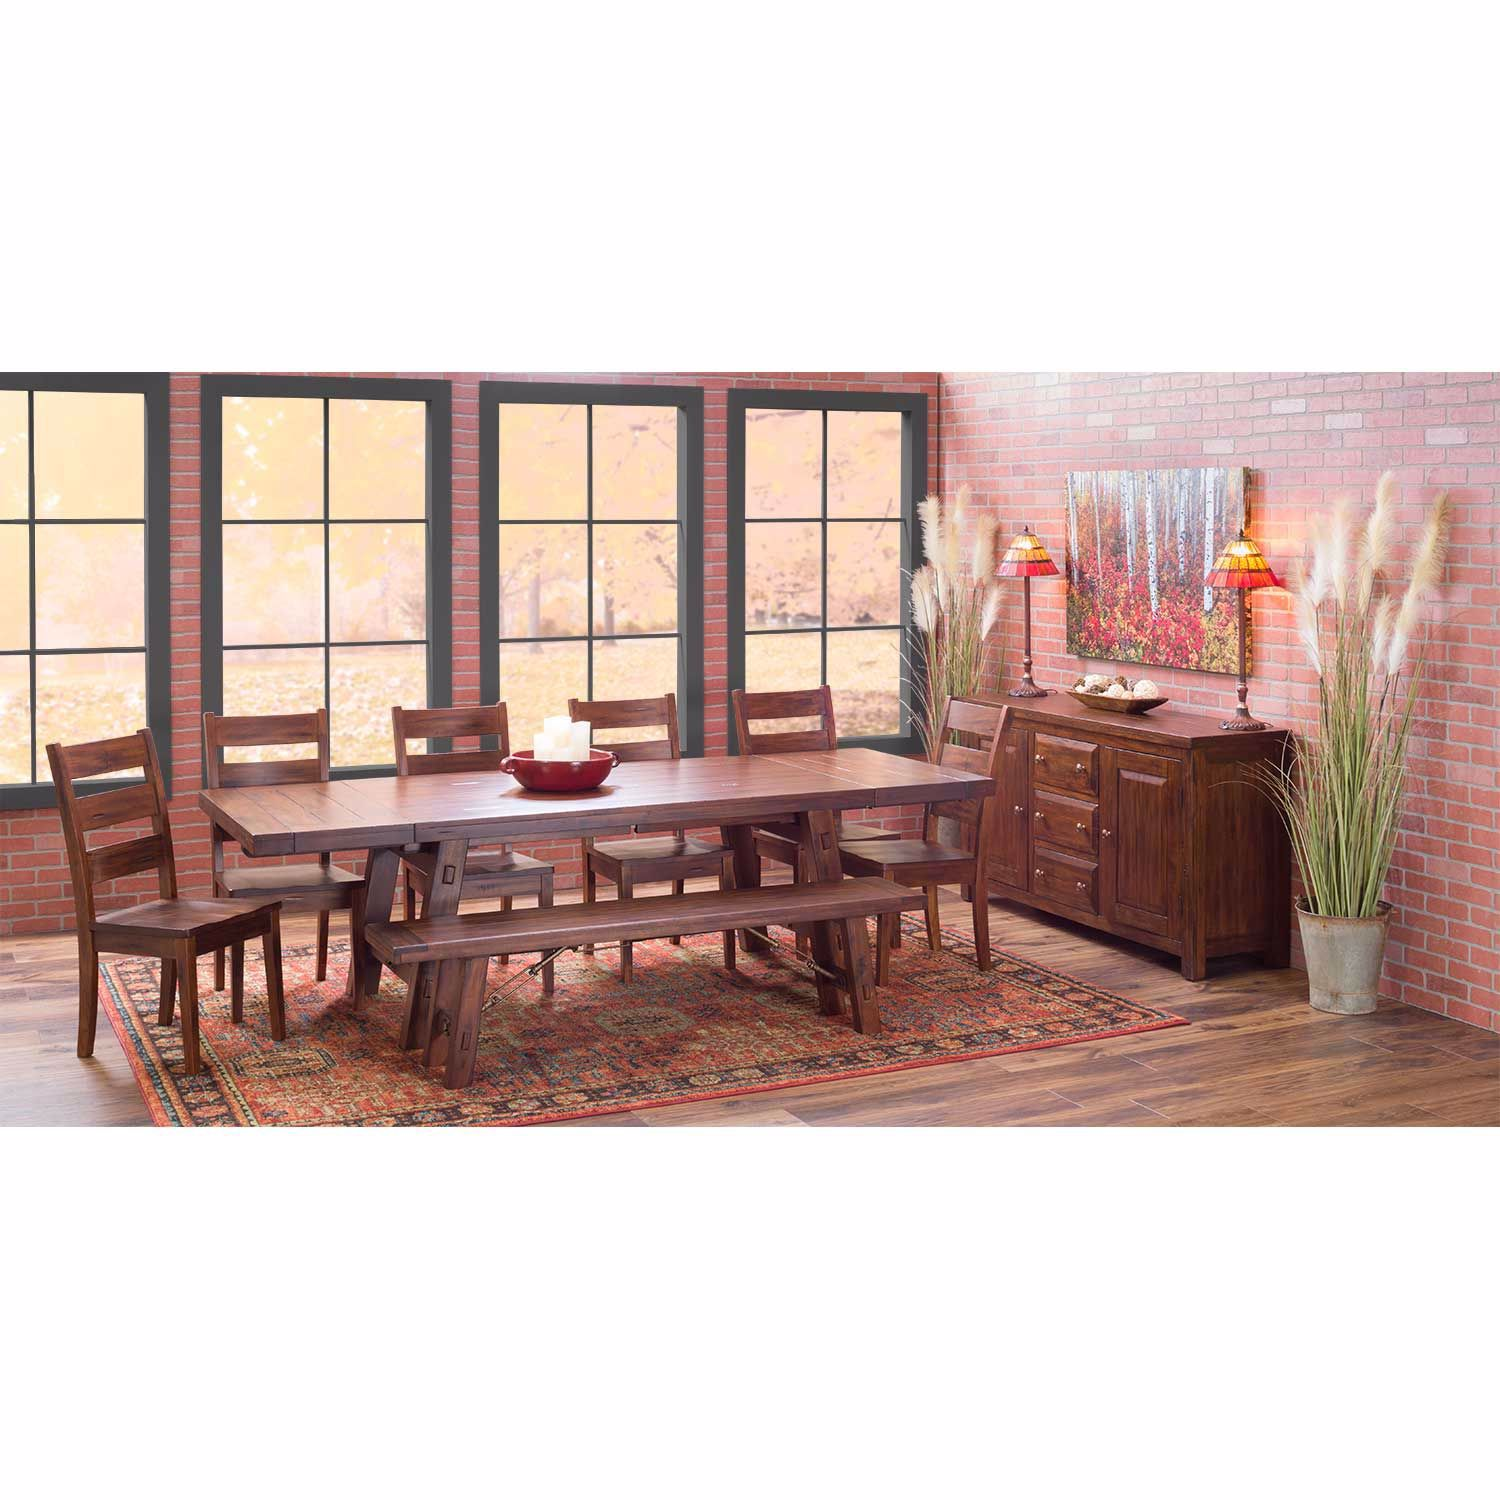 Picture of Tuscany 8 Piece Dining Set